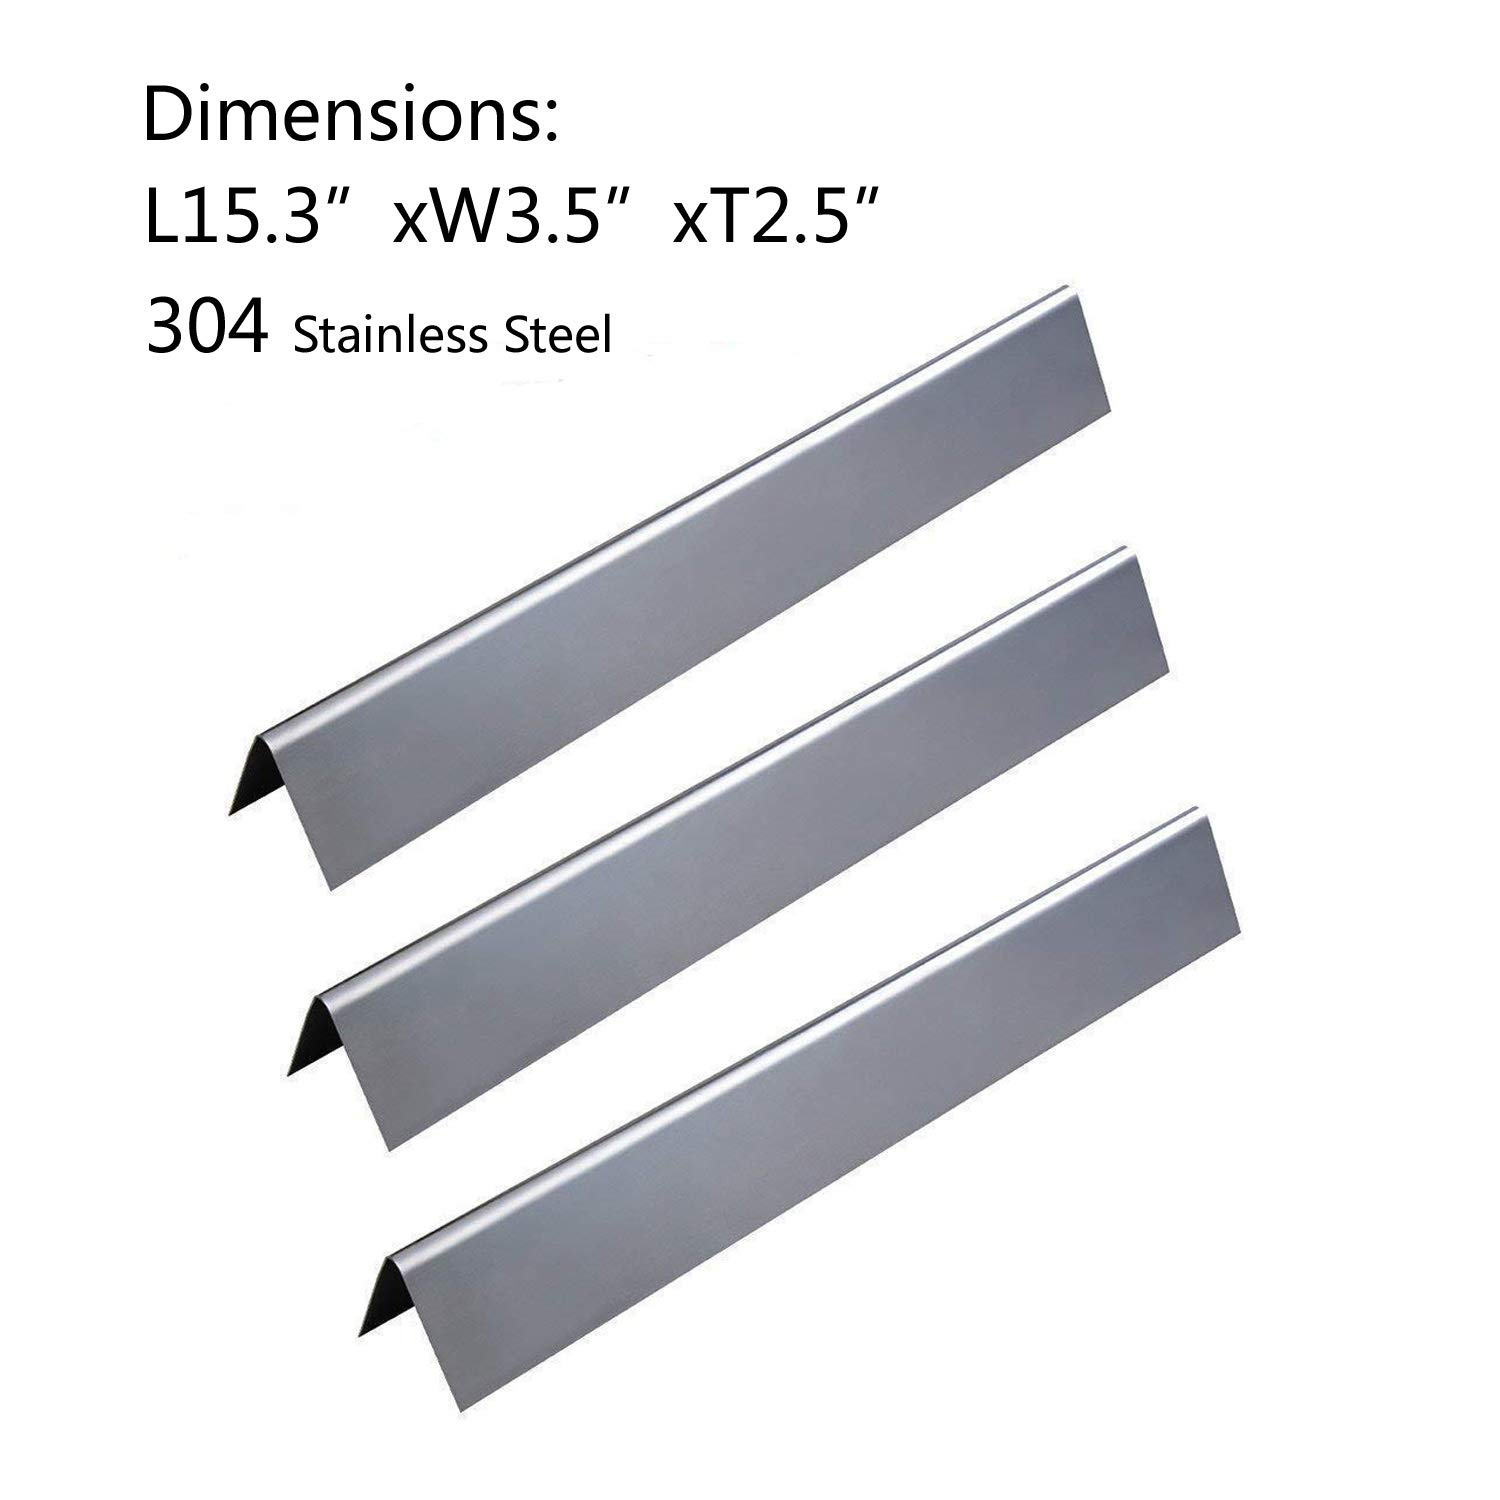 Stainless Steel Grill Heat Plate Shield Tent BBQ Burner Cover Flame Tamer Deflector Diffuser GASPRO SGP081 Gas Grill Replacement Parts for Jenn-Air and Vermont Castings 3-Pack, 14 1//2 x 7 1//4 inch